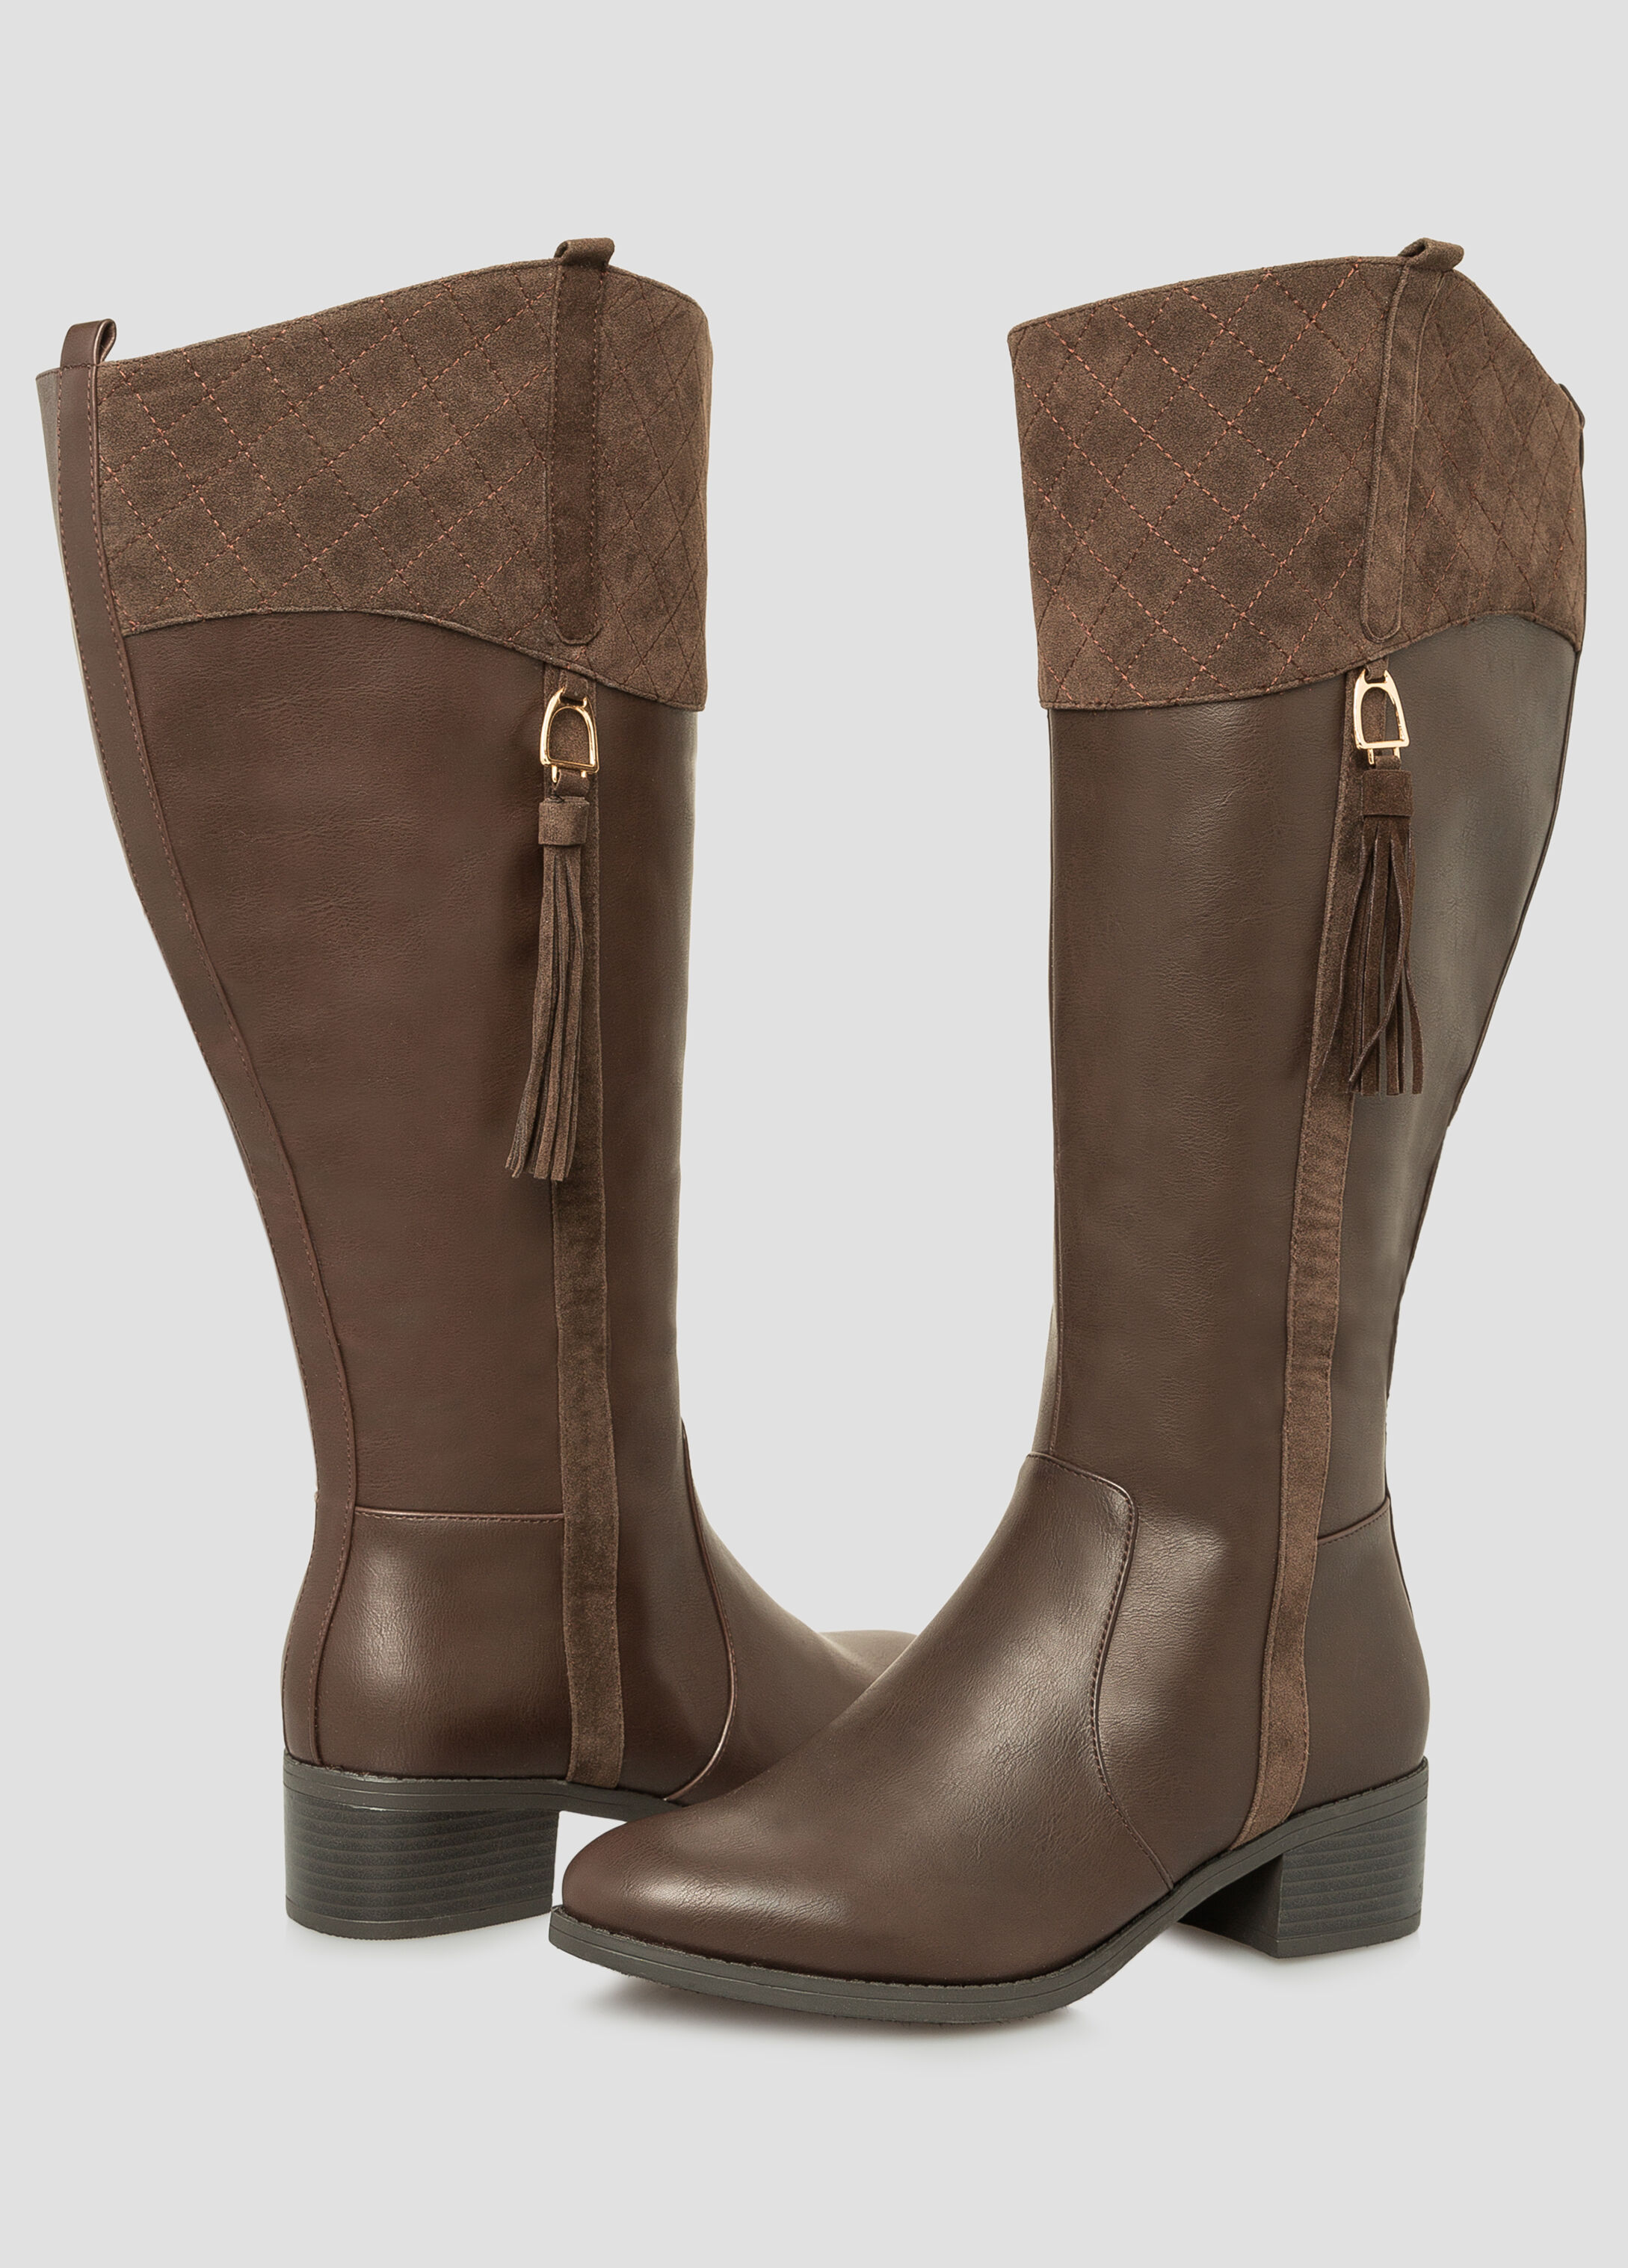 Free shipping BOTH ways on womens wide riding boots, from our vast selection of styles. Fast delivery, and 24/7/ real-person service with a smile. Click or call